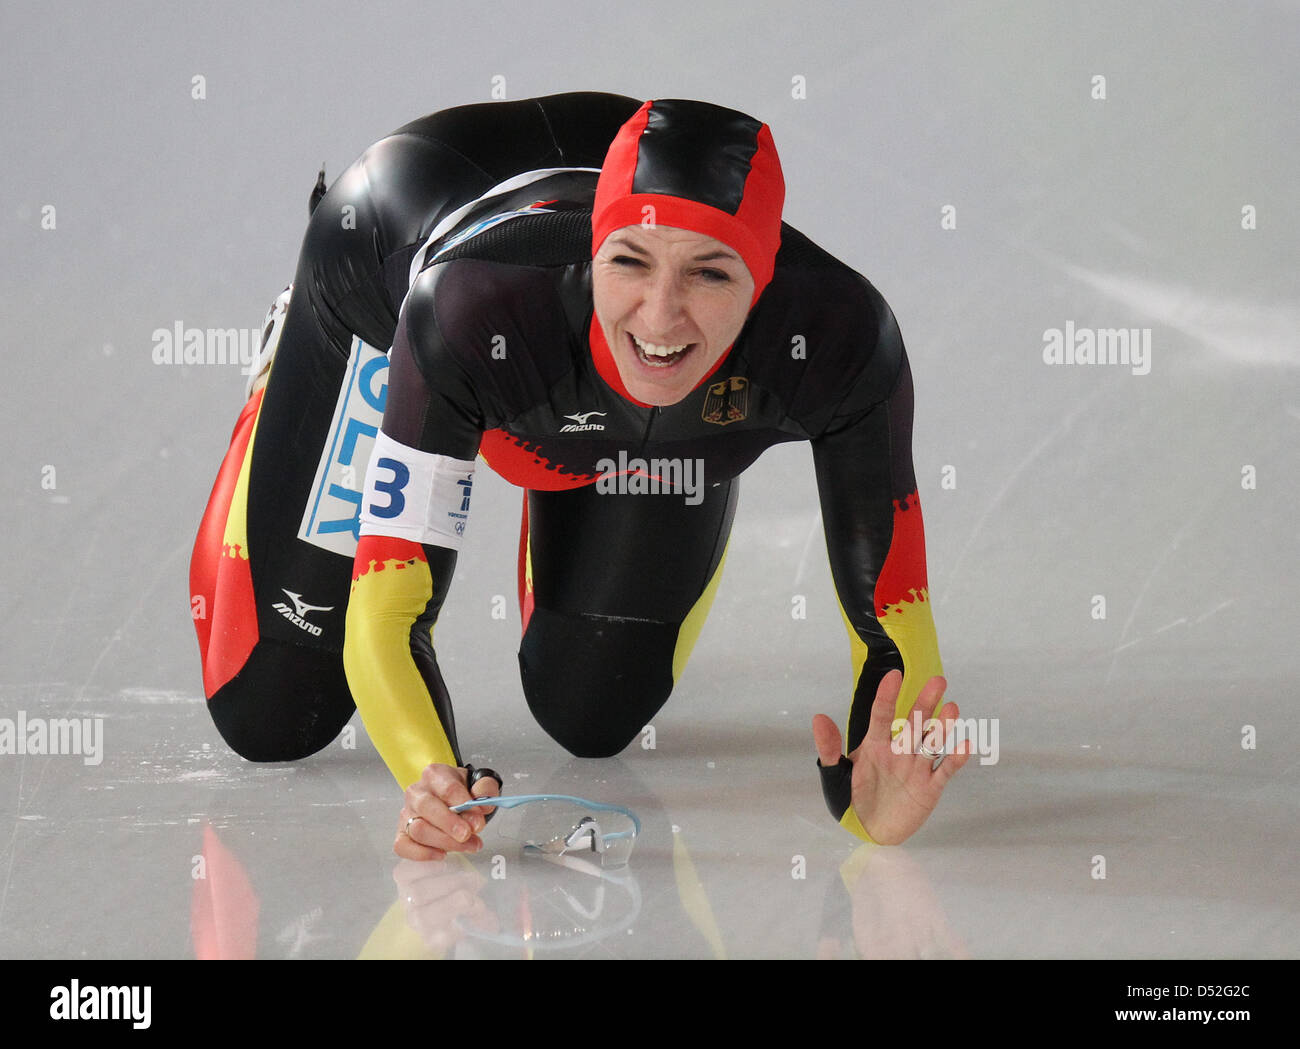 olympic speed skating